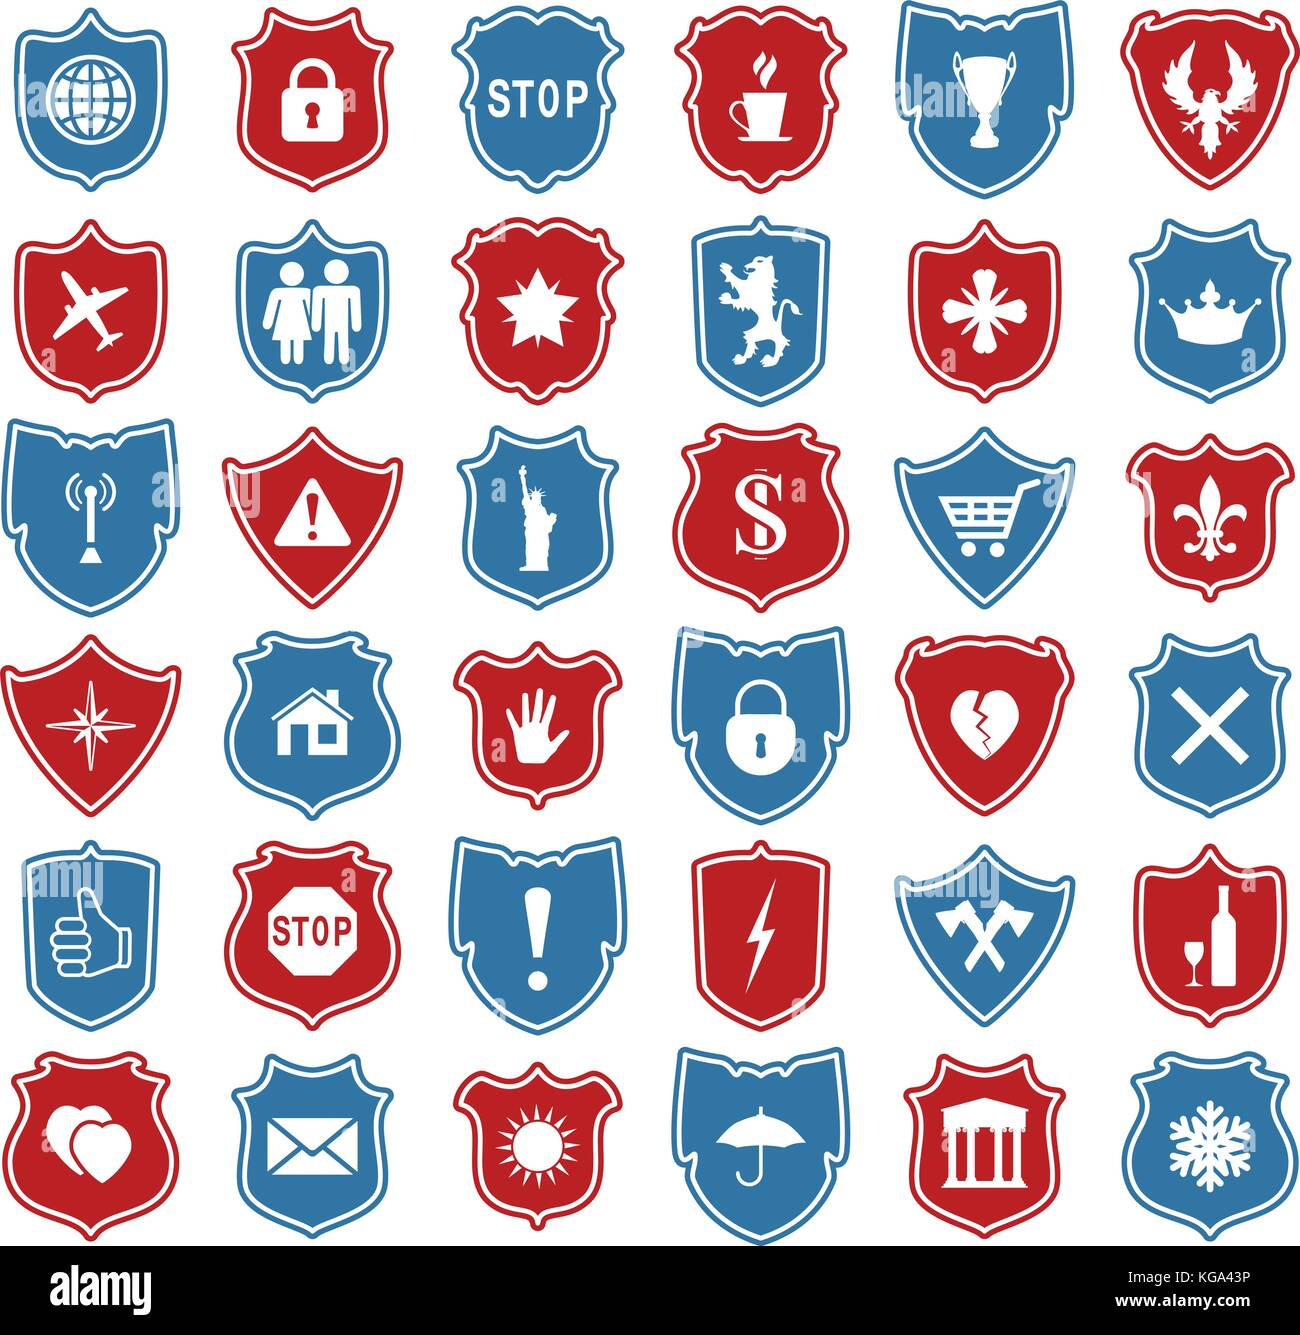 Vector Set Of Shield Icons With Modern And Medieval Symbols Stock